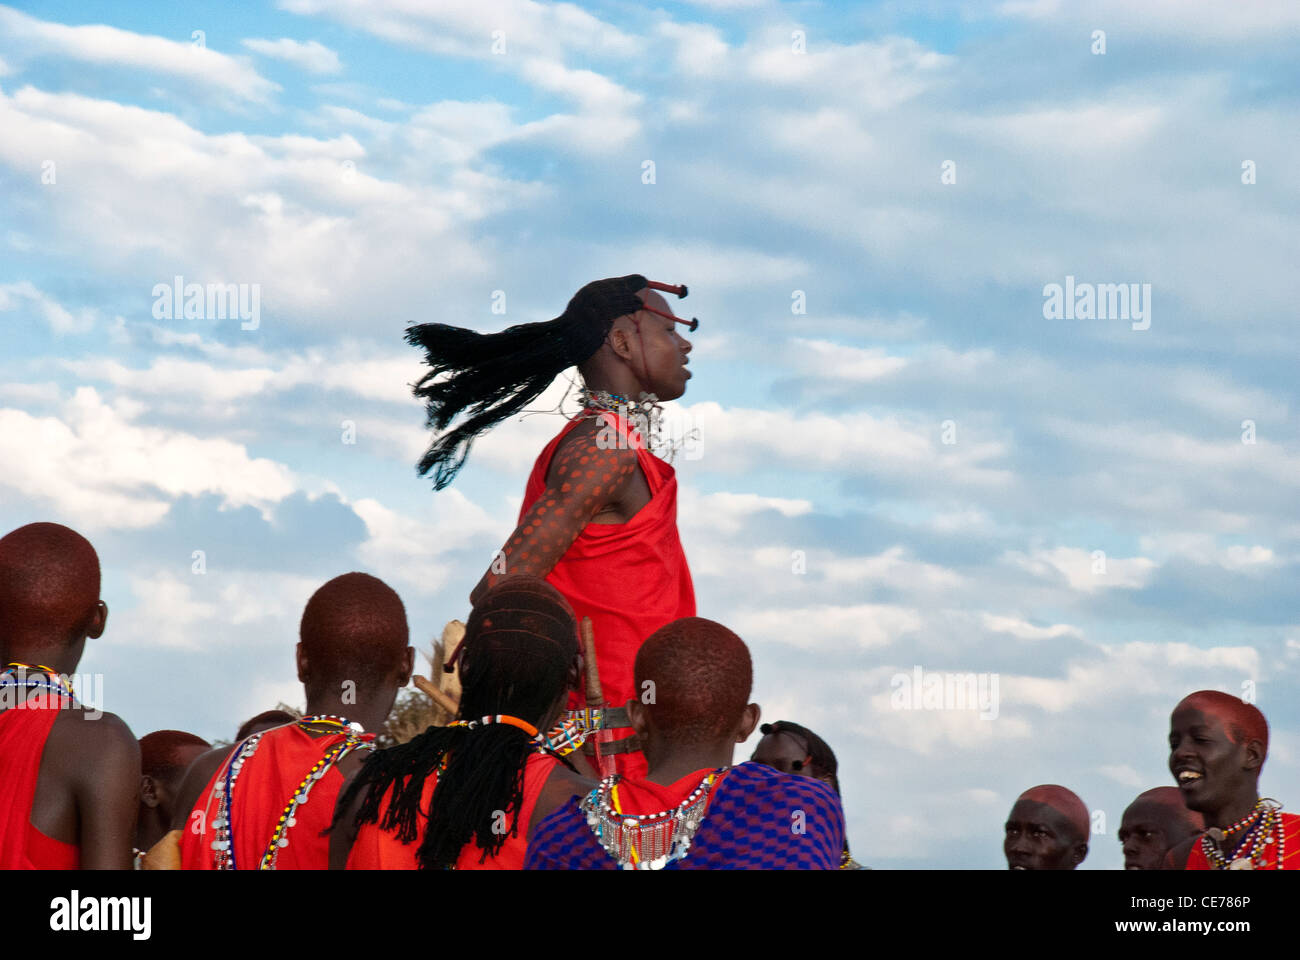 Masai men, doing a jumping dance, wearing traditional dress, in a village in the Masai Mara, Kenya, AfricaStock Photo